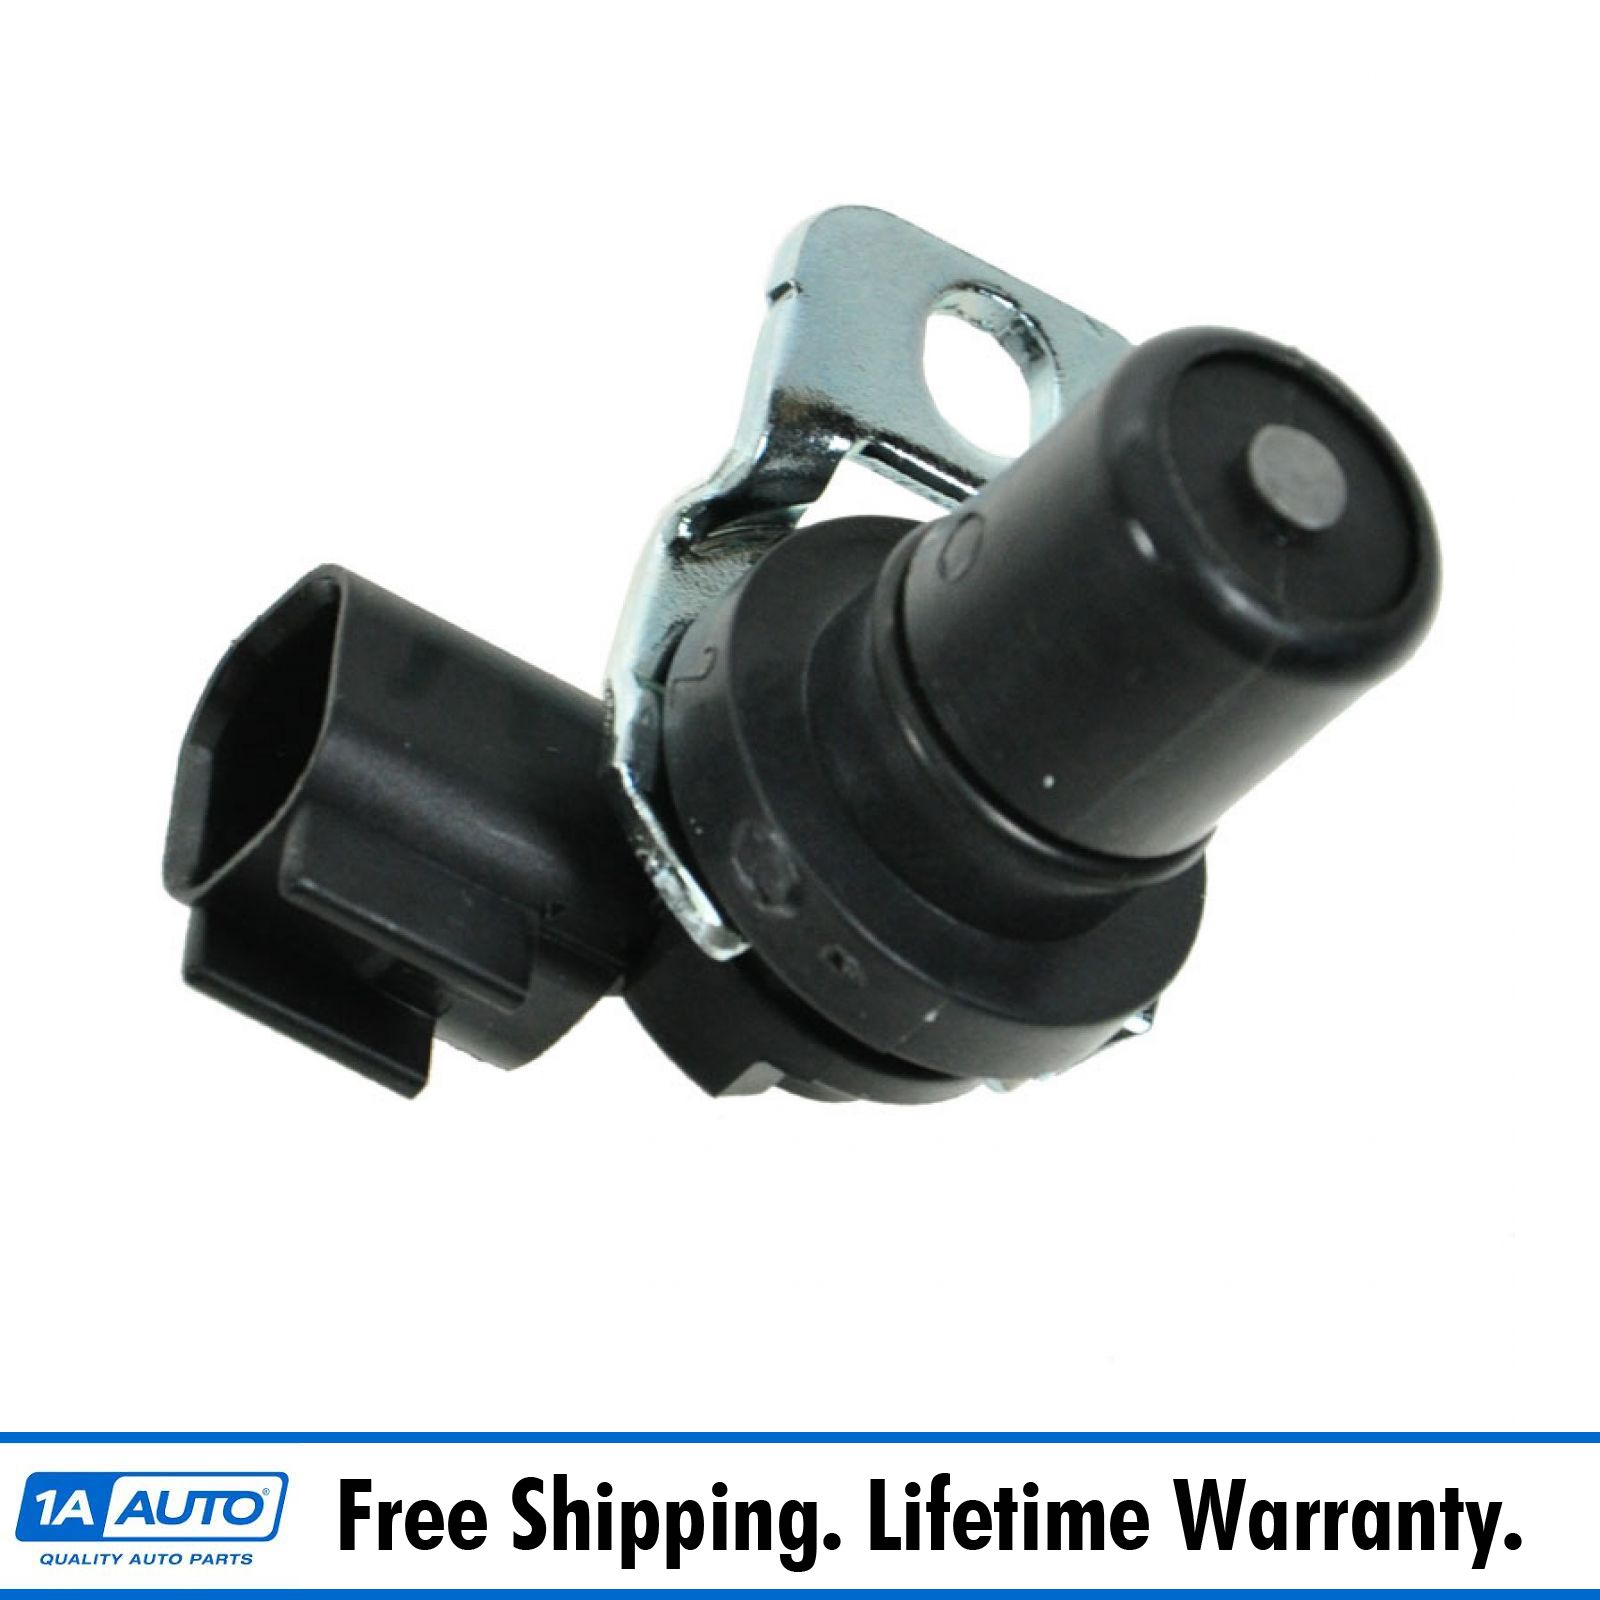 2008 Ford E150 Cargo Transmission: MOTORCRAFT DY1215 Output Speed Sensor For Crown Victoria